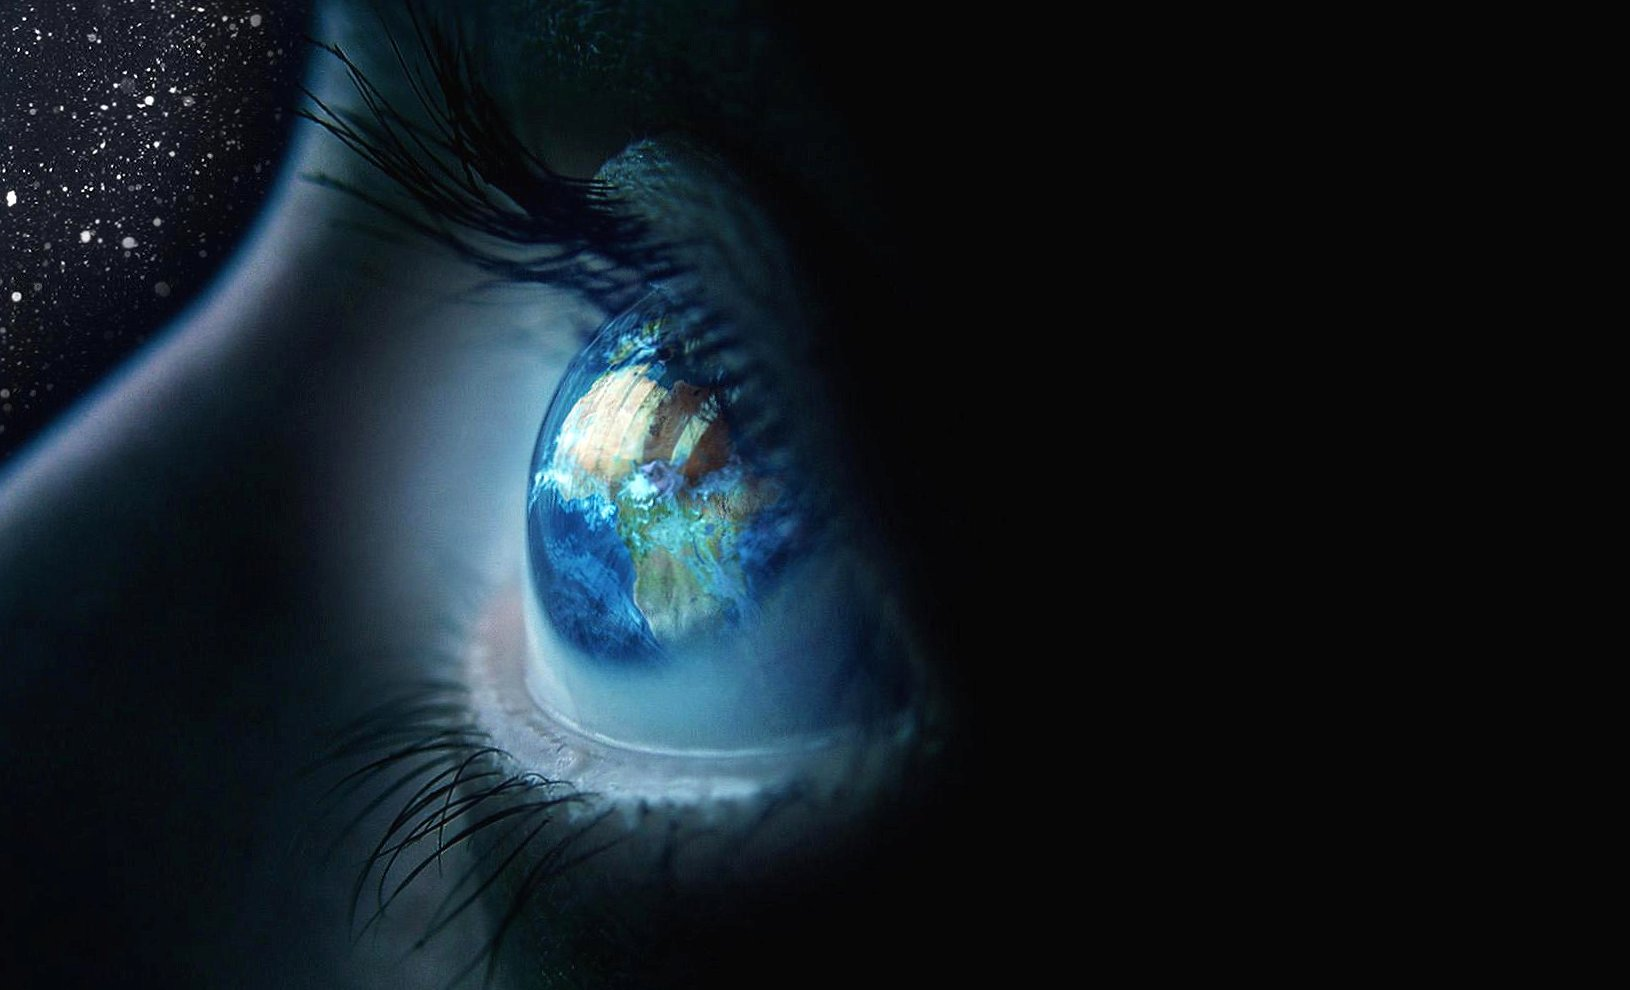 Eye in the space photoshop effects wallpapers HD quality